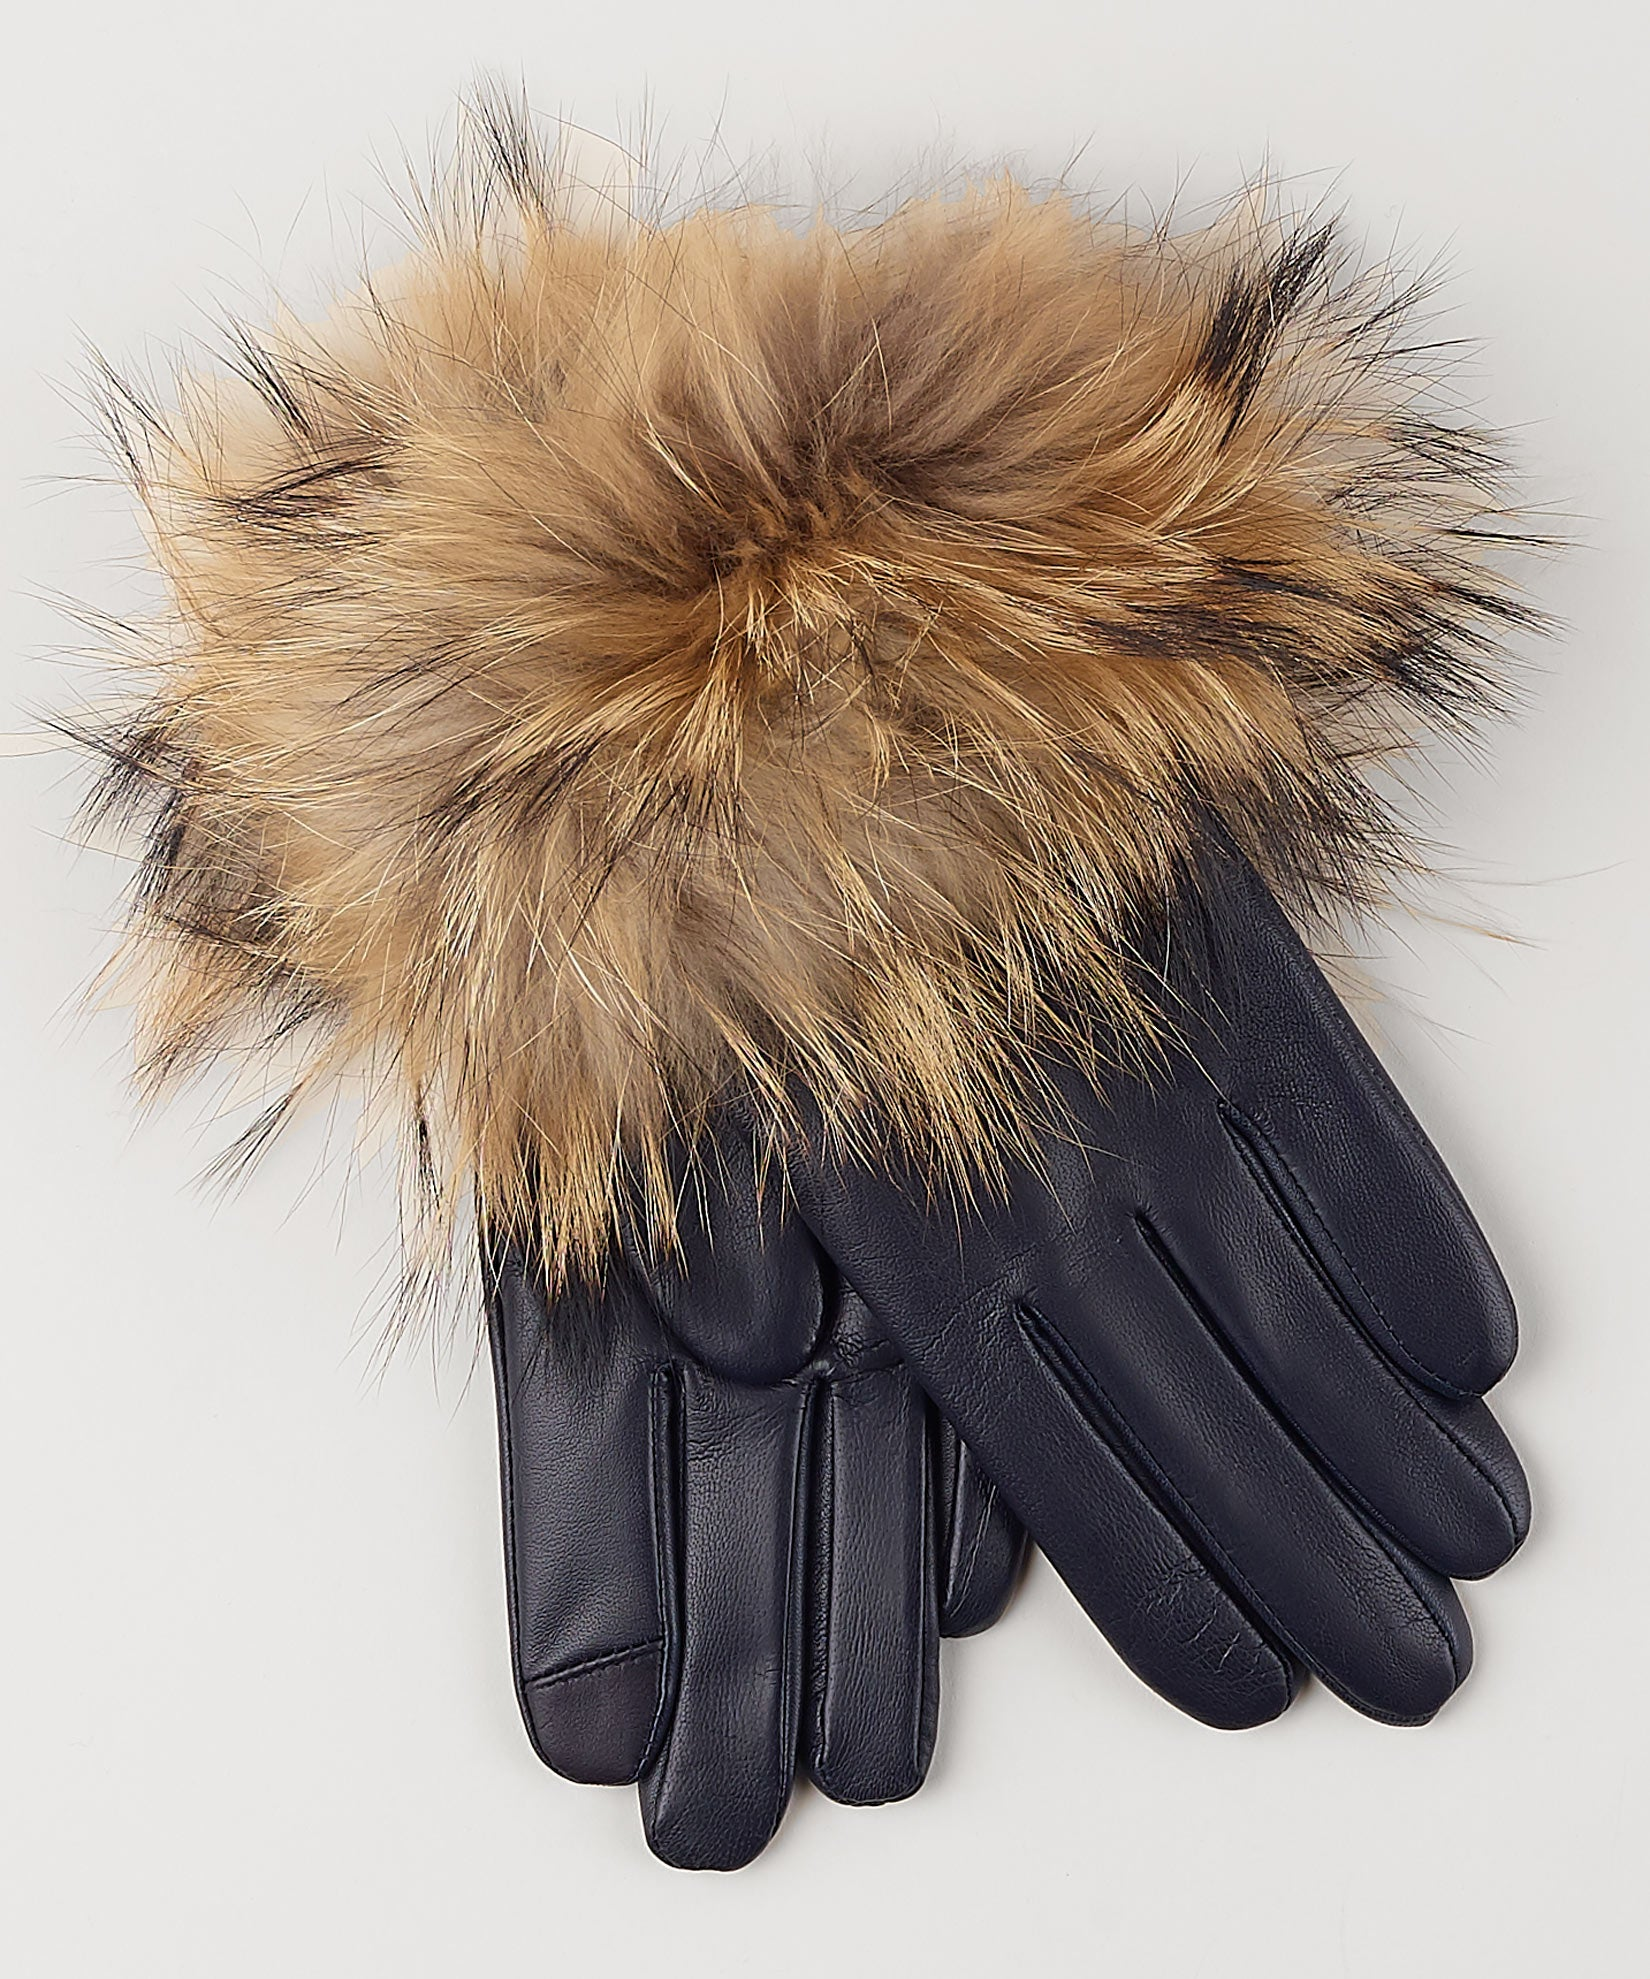 Navy - Fur Cuff Glove